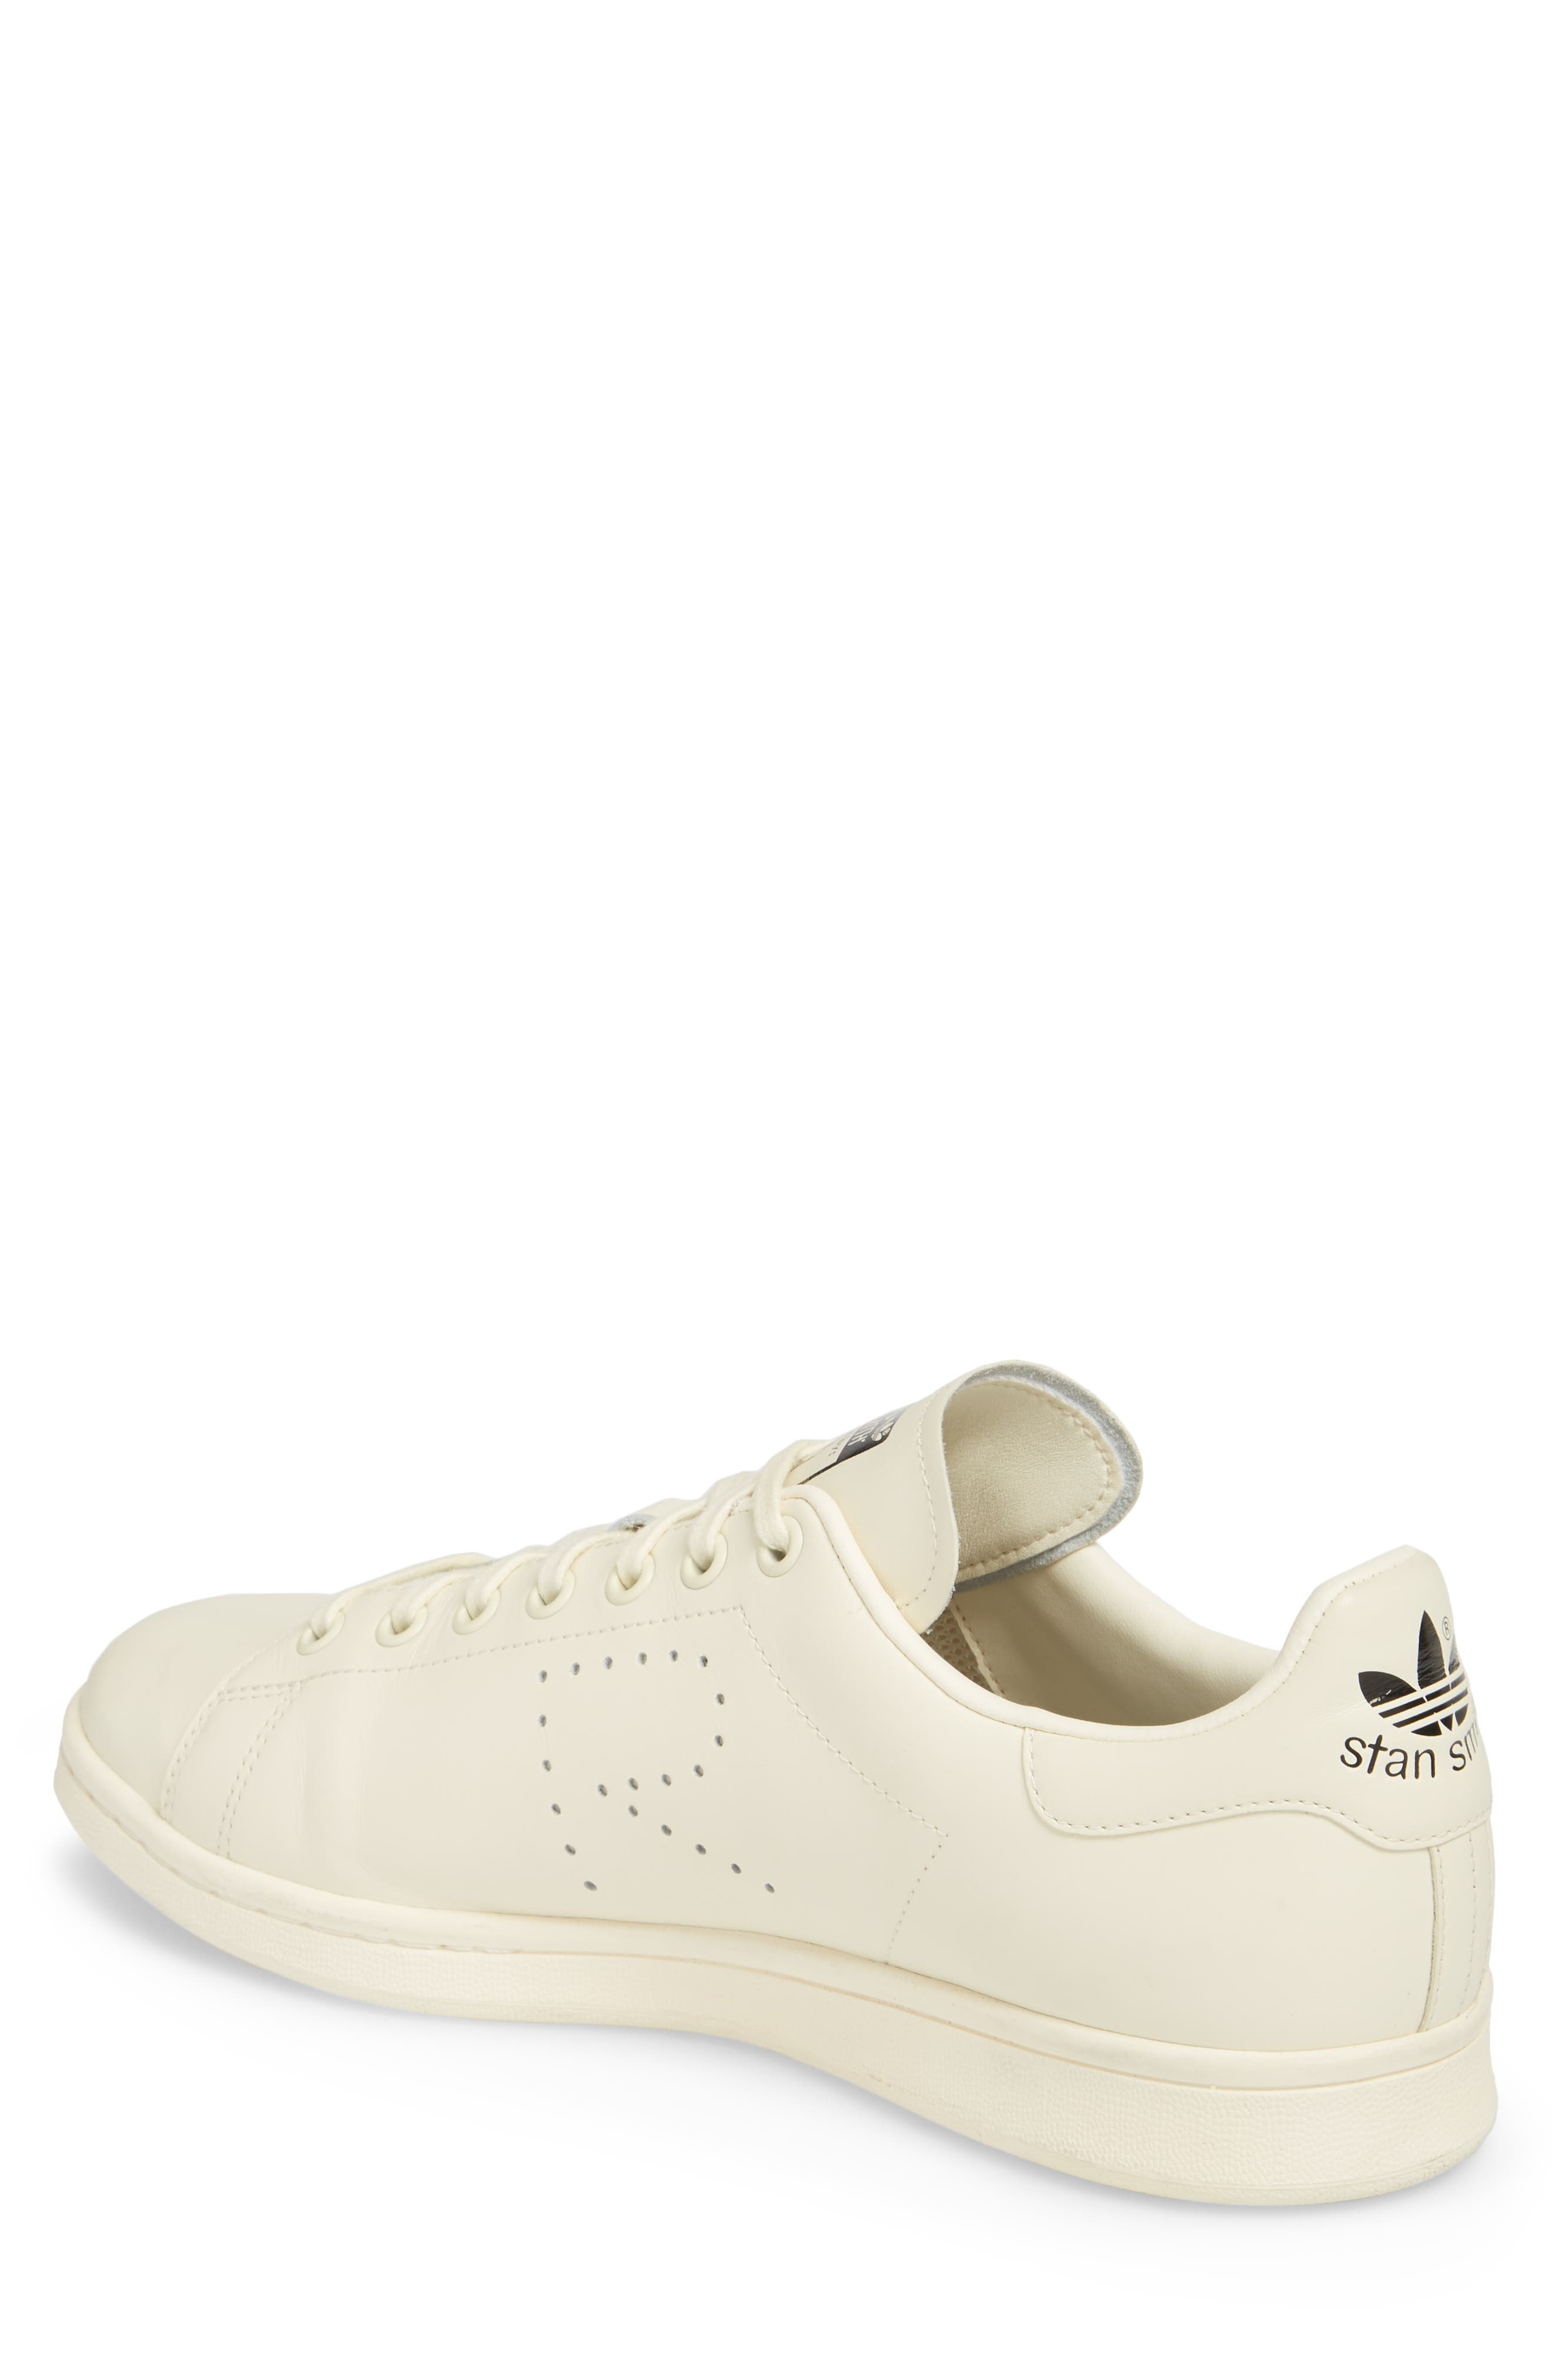 RAF SIMONS BY ADIDAS,                             adidas by Raf Simons 'Stan Smith' Sneaker,                             Alternate thumbnail 2, color,                             151